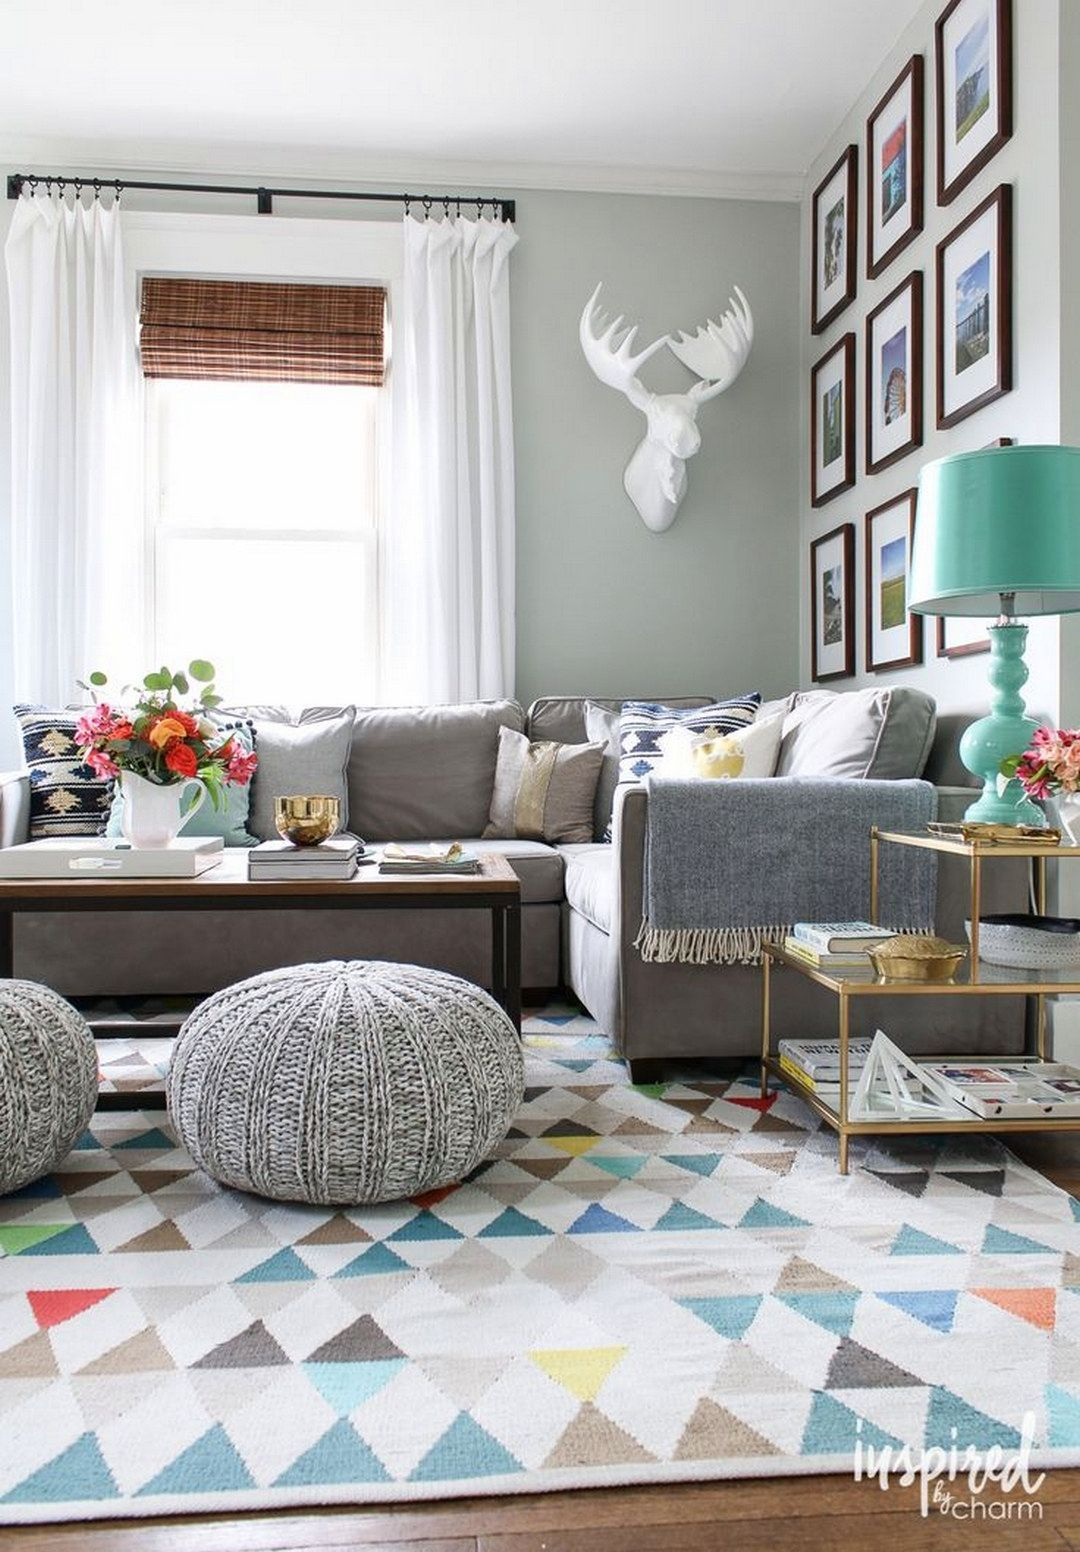 kids living room furniture what color should i paint my with brown leather 50 ways to decorate your home in mind friendly storage